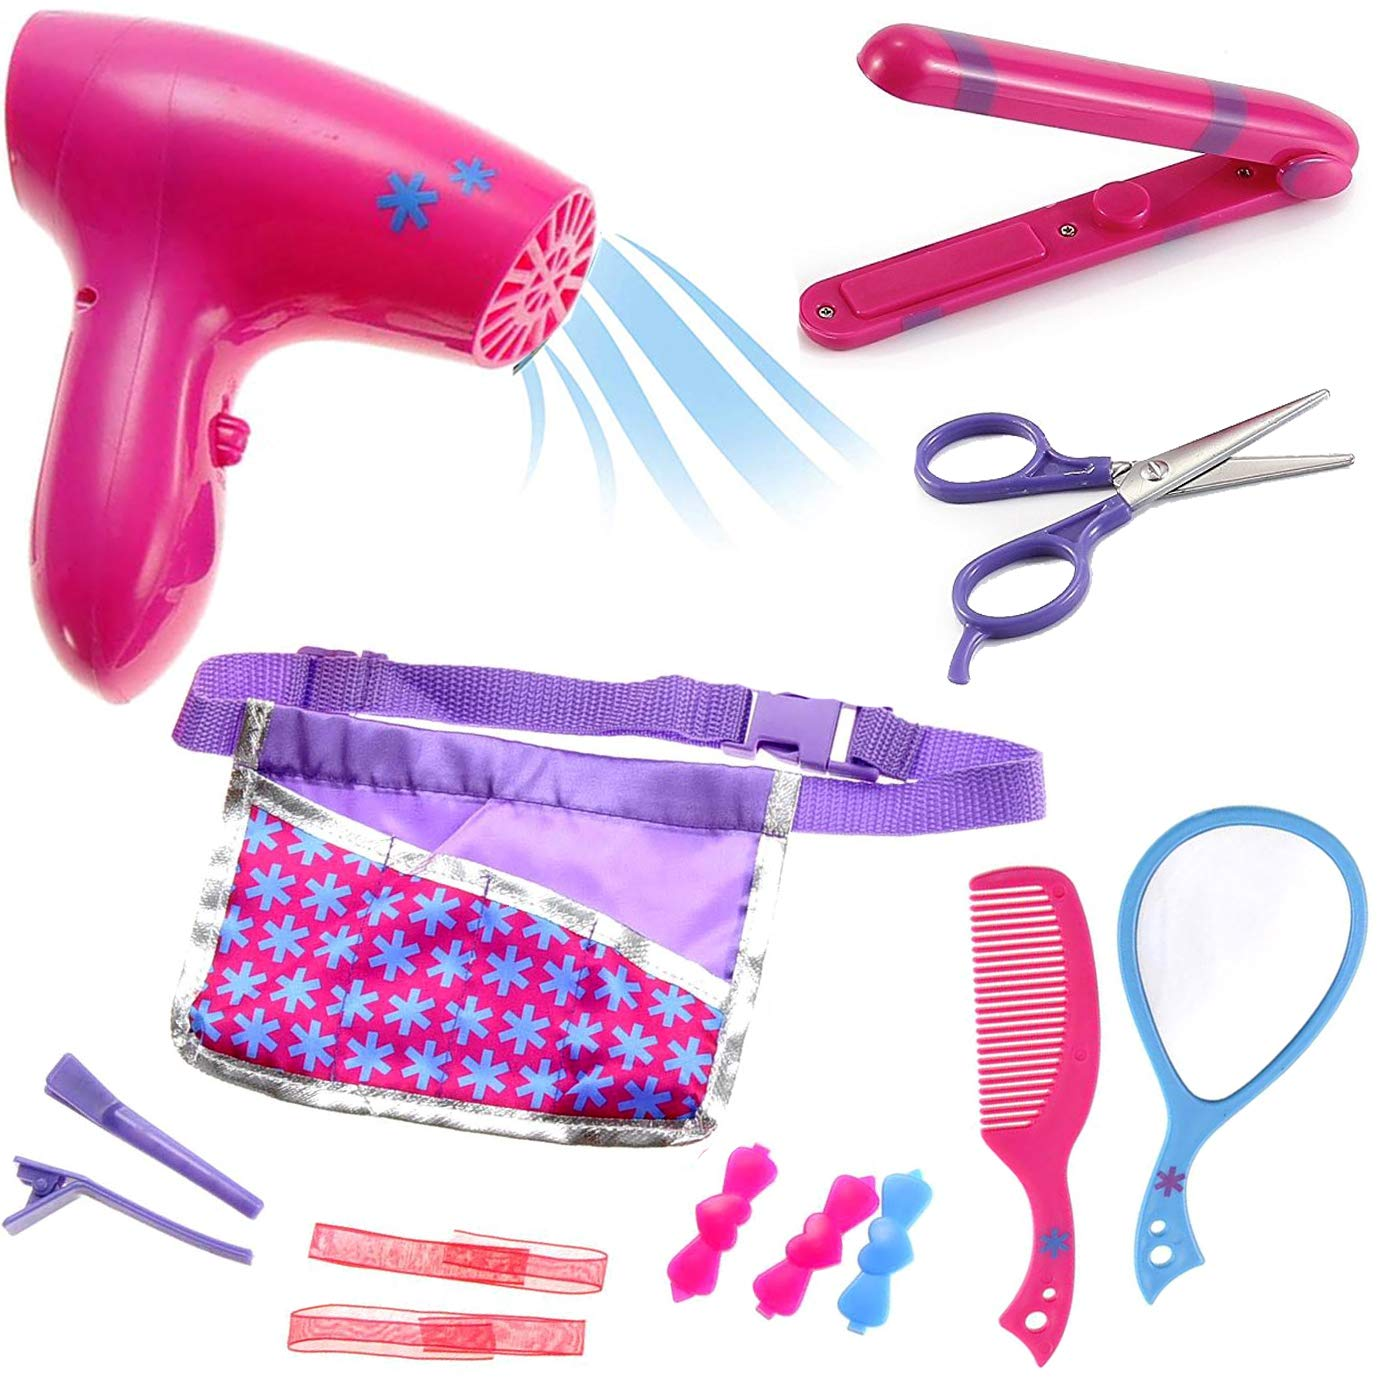 Liberty Imports Beauty Hair Stylist Set - Boutique Beauty Salon Fashion Pretend Play Set for Girls with Toy Blow Dryer, Curler, Scissors, Comb, Mirror & Other Styling Tools by Liberty Imports